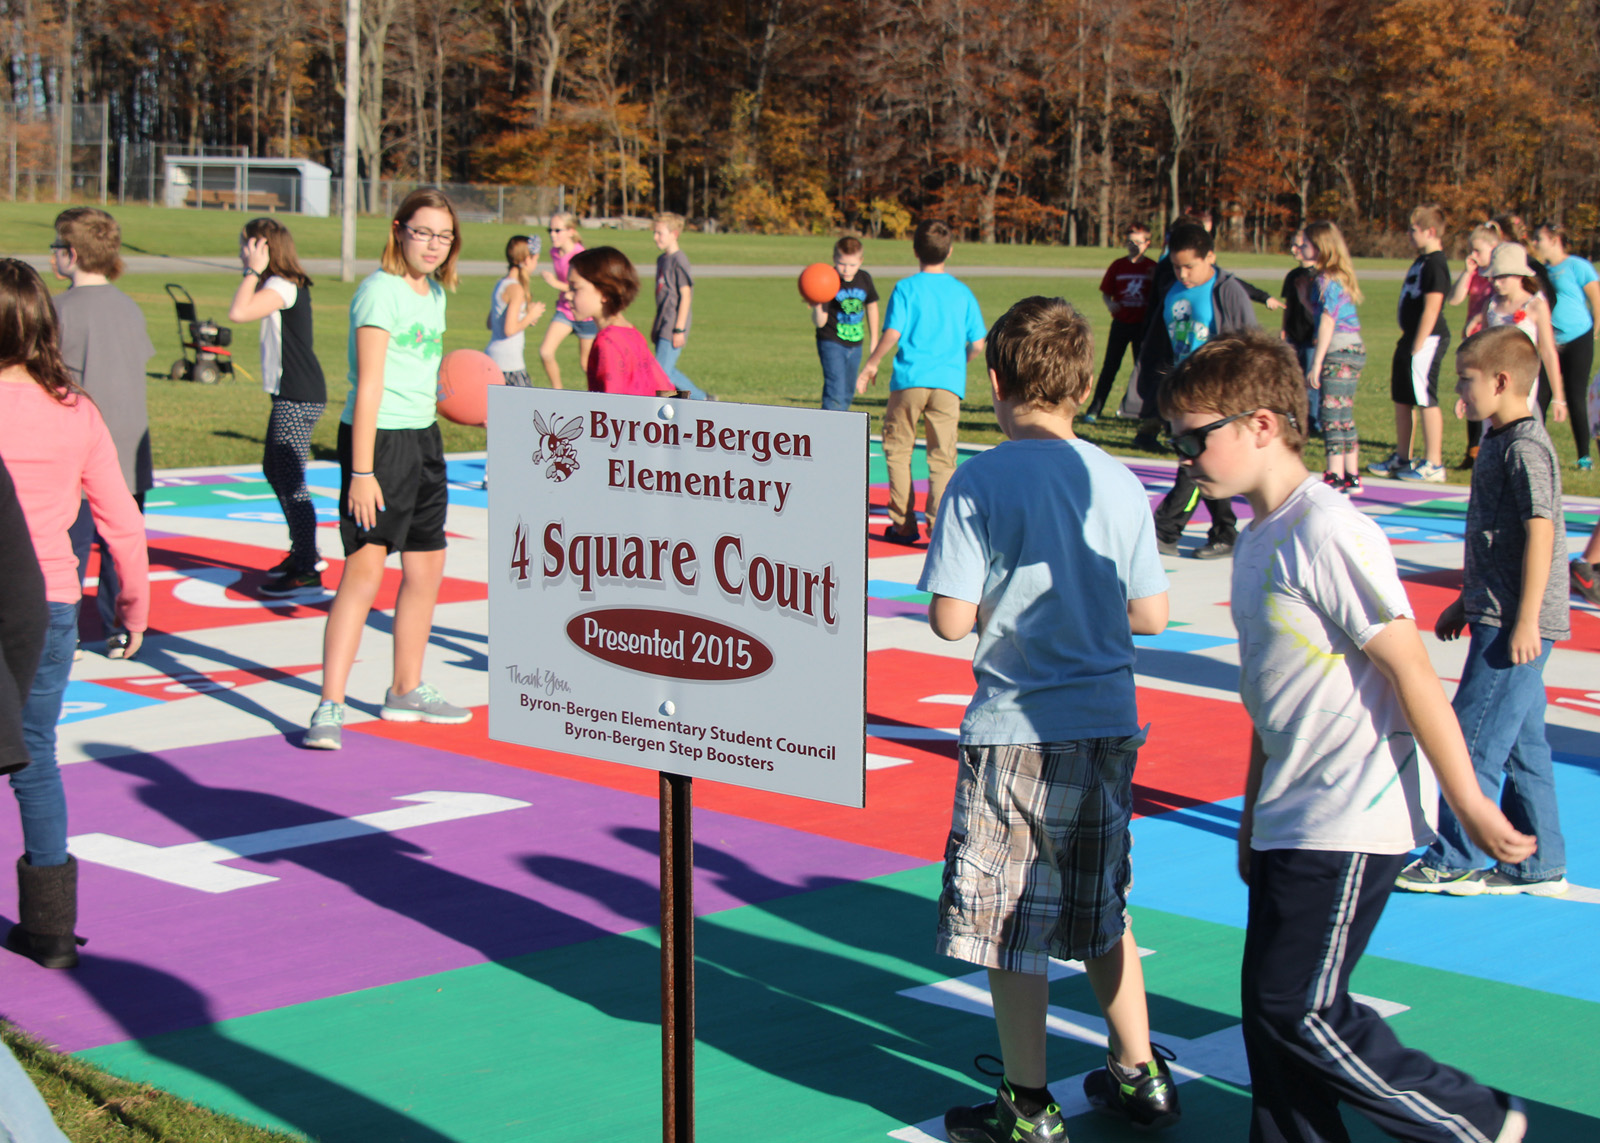 Student Council President Elli Schelemanow thanks everyone who worked so hard to make the new four square court a reality. Provided photo